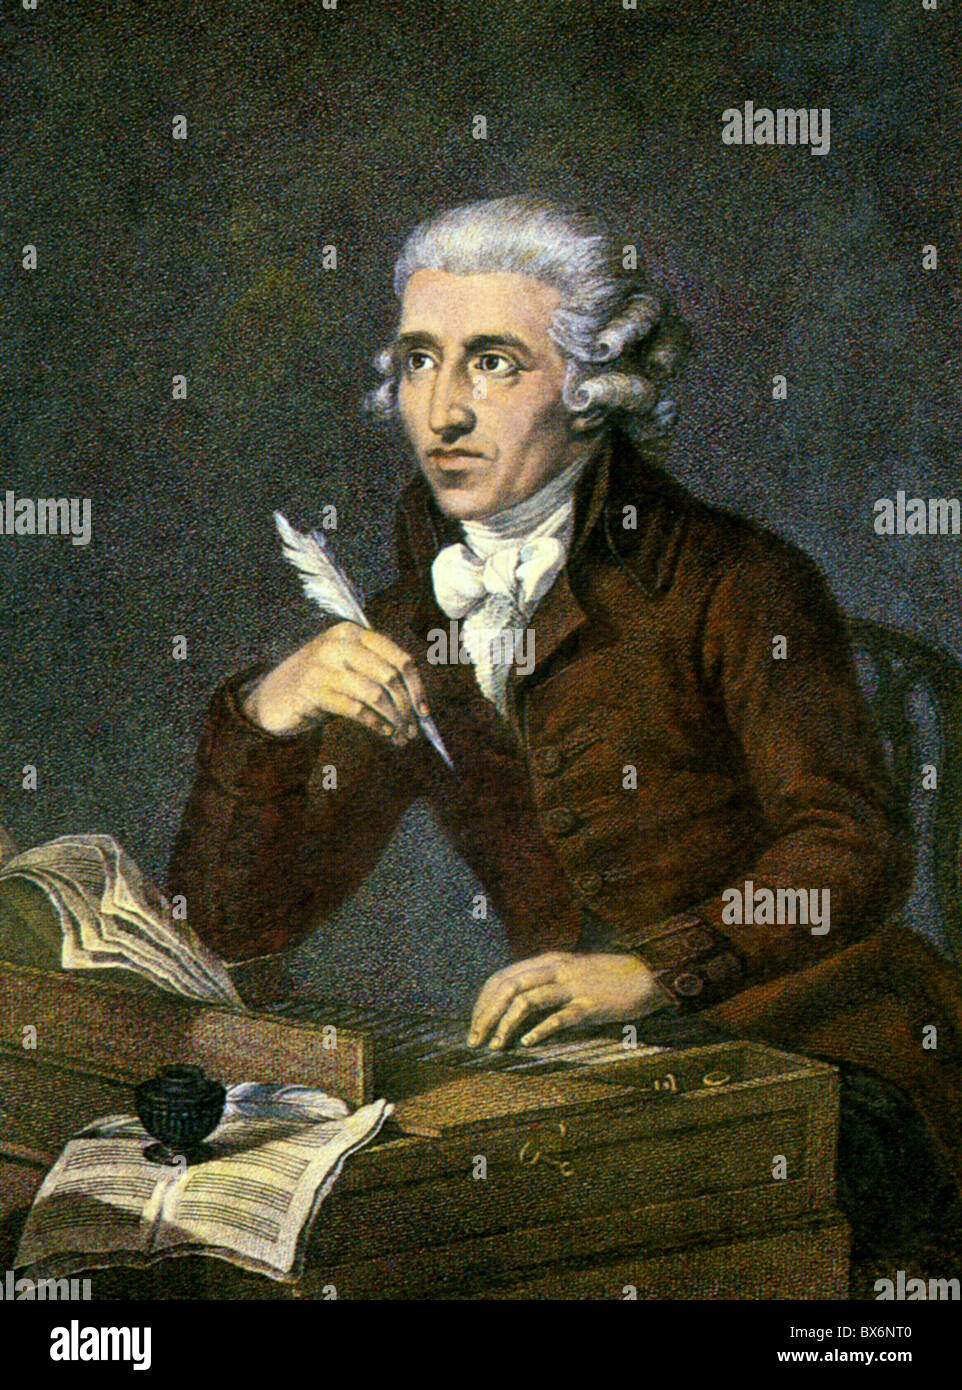 Haydn, Joseph, 31.3.1732 - 31.5.1809, Austrian composer, portrait, print after painting by Ludwig Gutterbrunn, circa Stock Photo